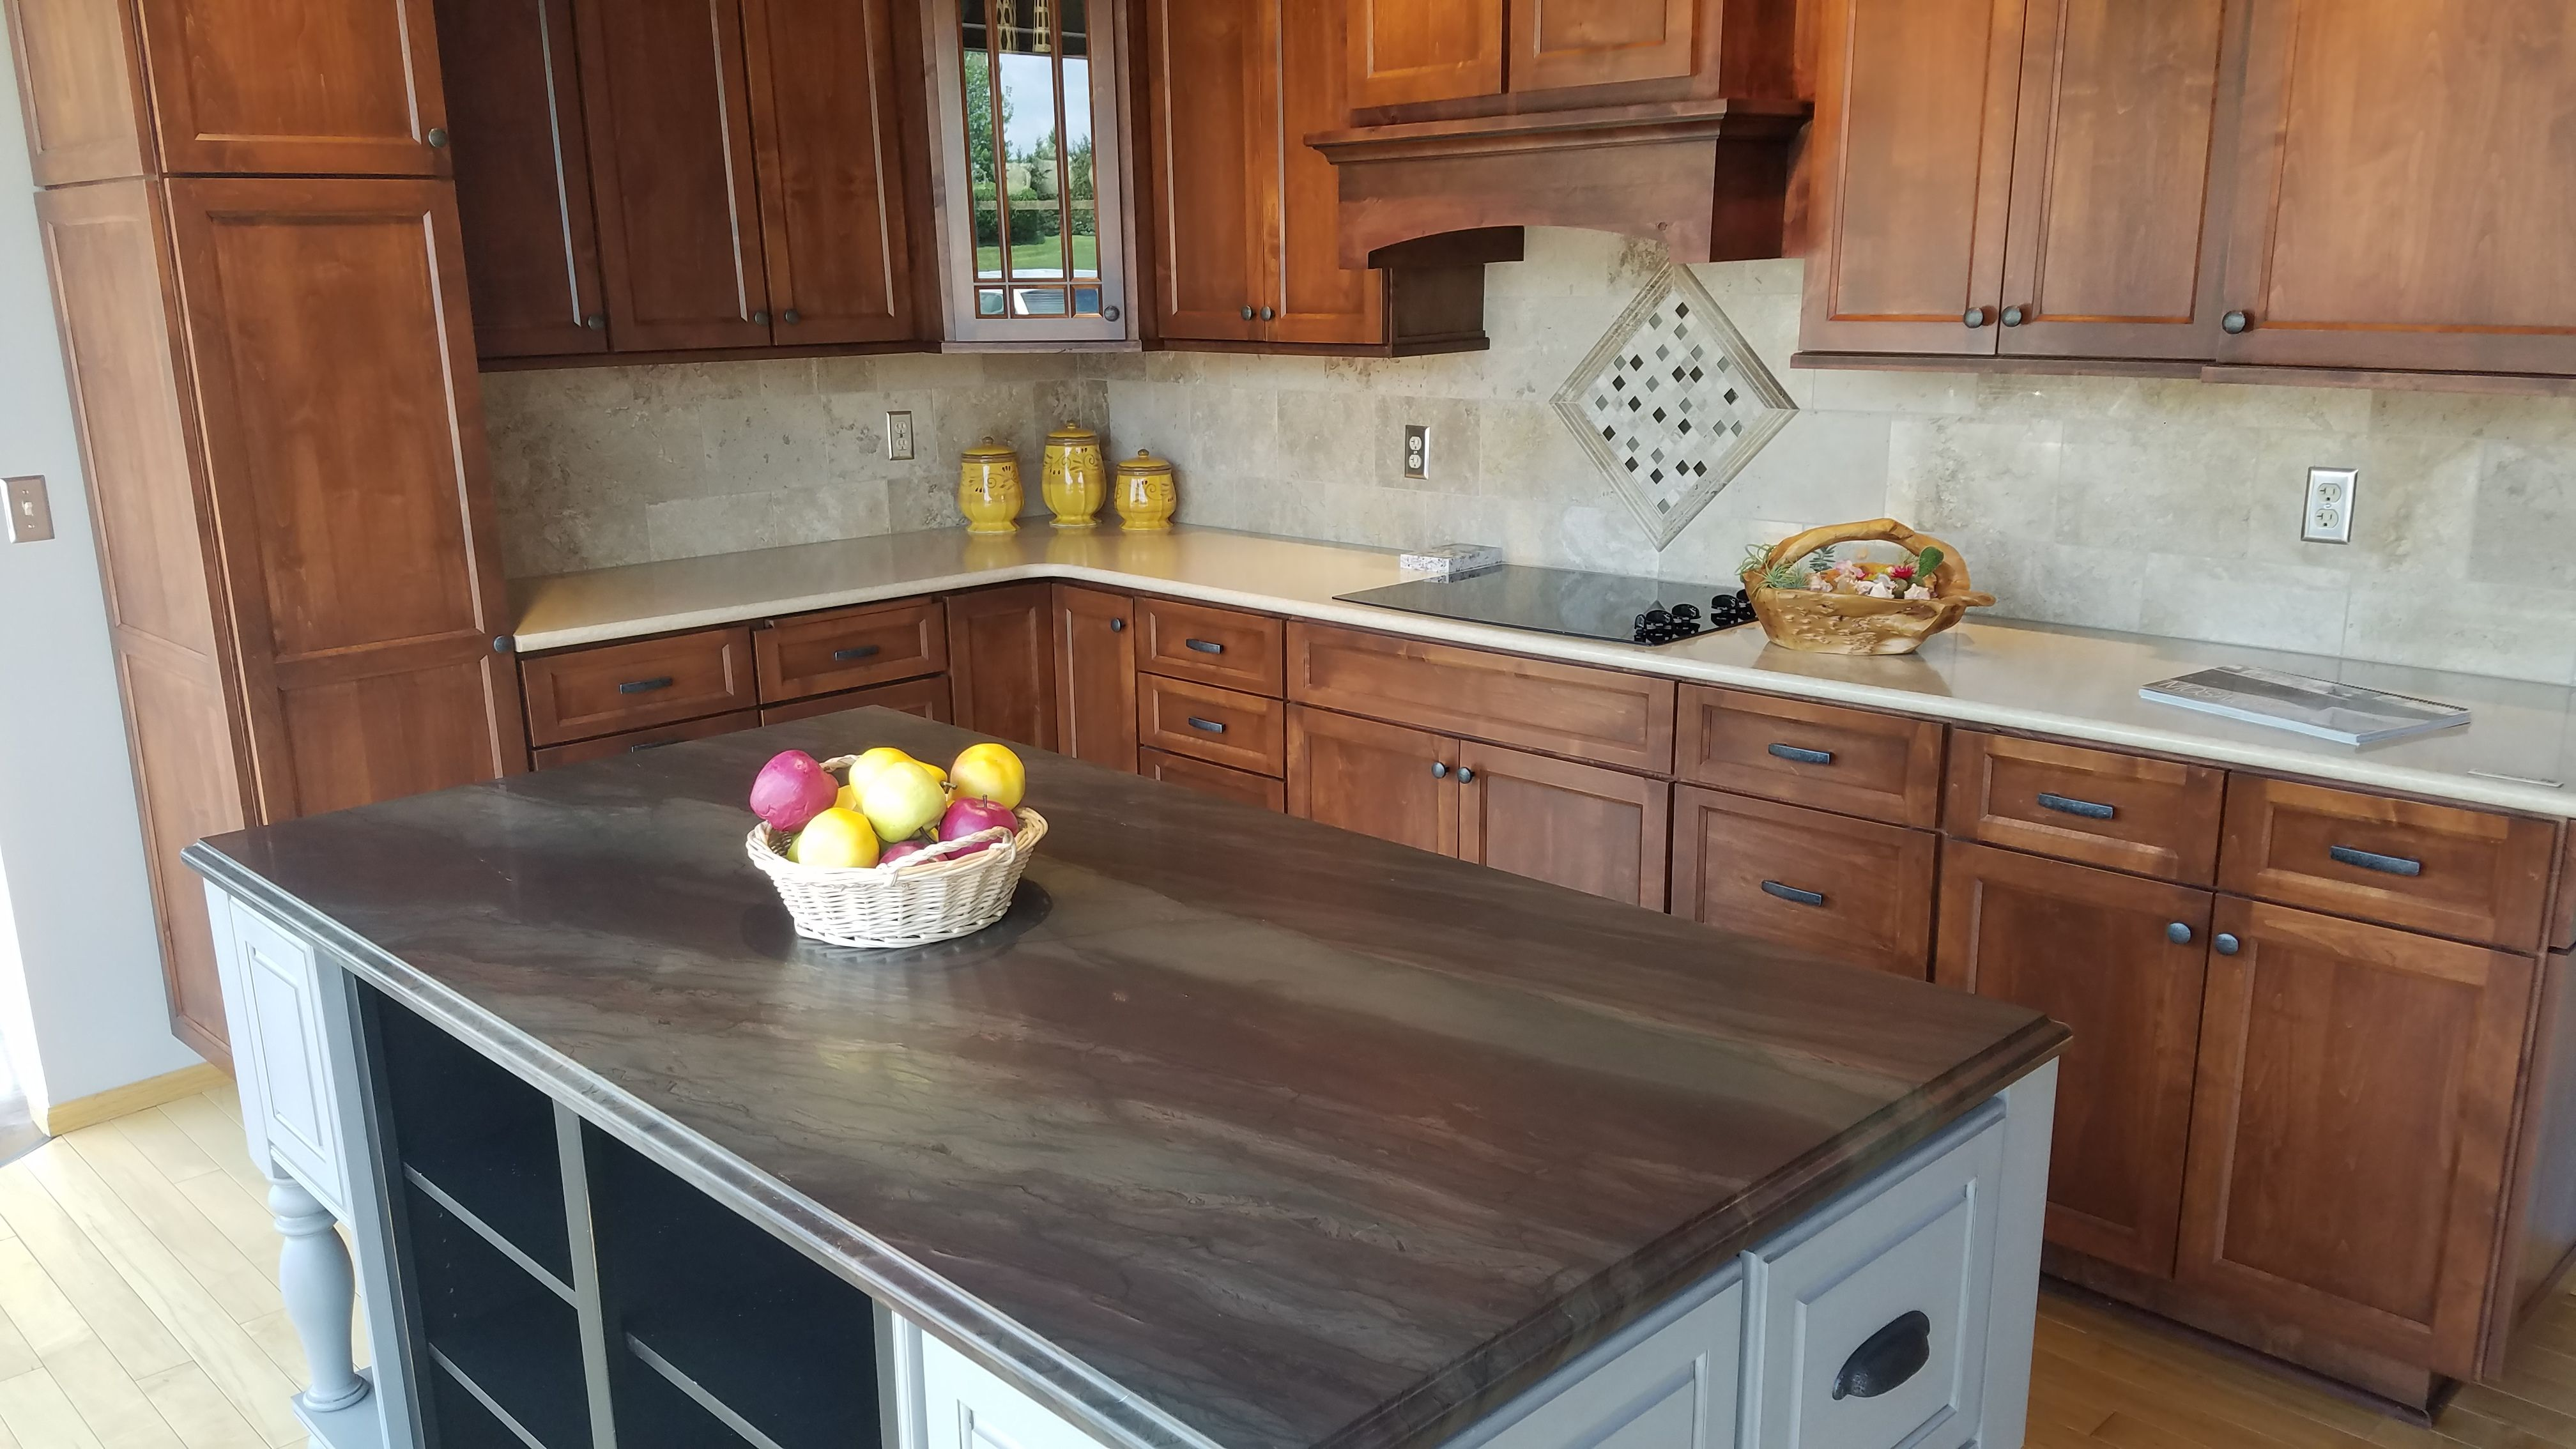 Agc Affordable Granite & Cabinetry Showroom #Granite #Cabinetry #Affordable #Kitchen